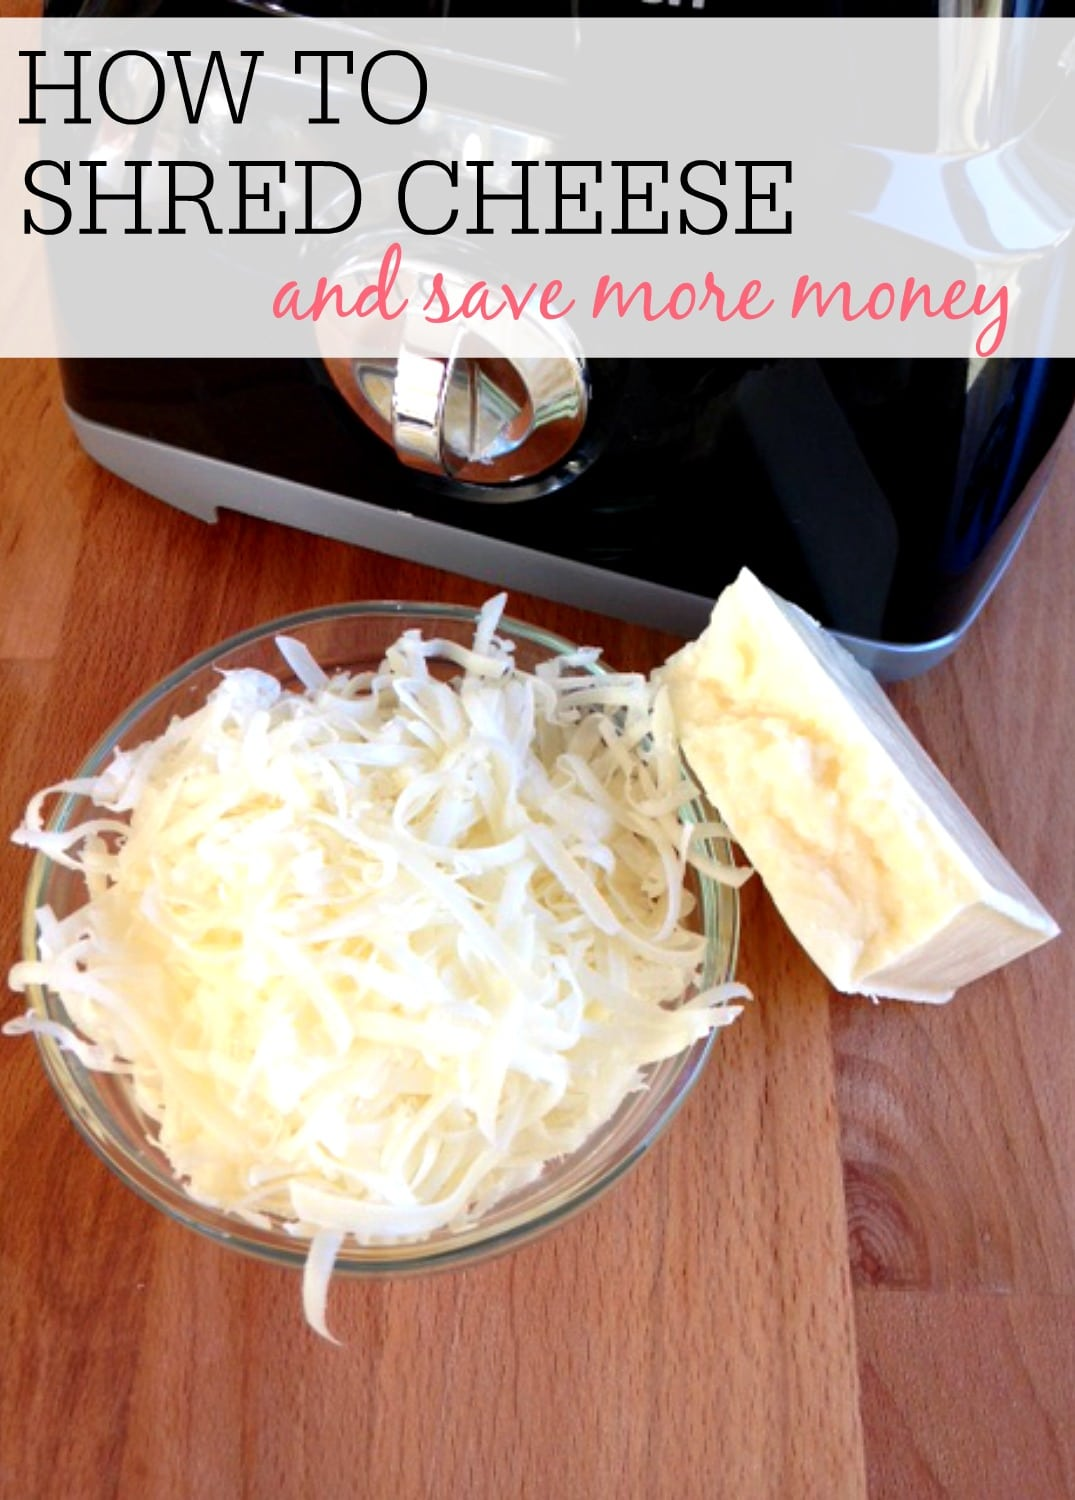 How To Shred Your Own Cheese - Frugally Blonde